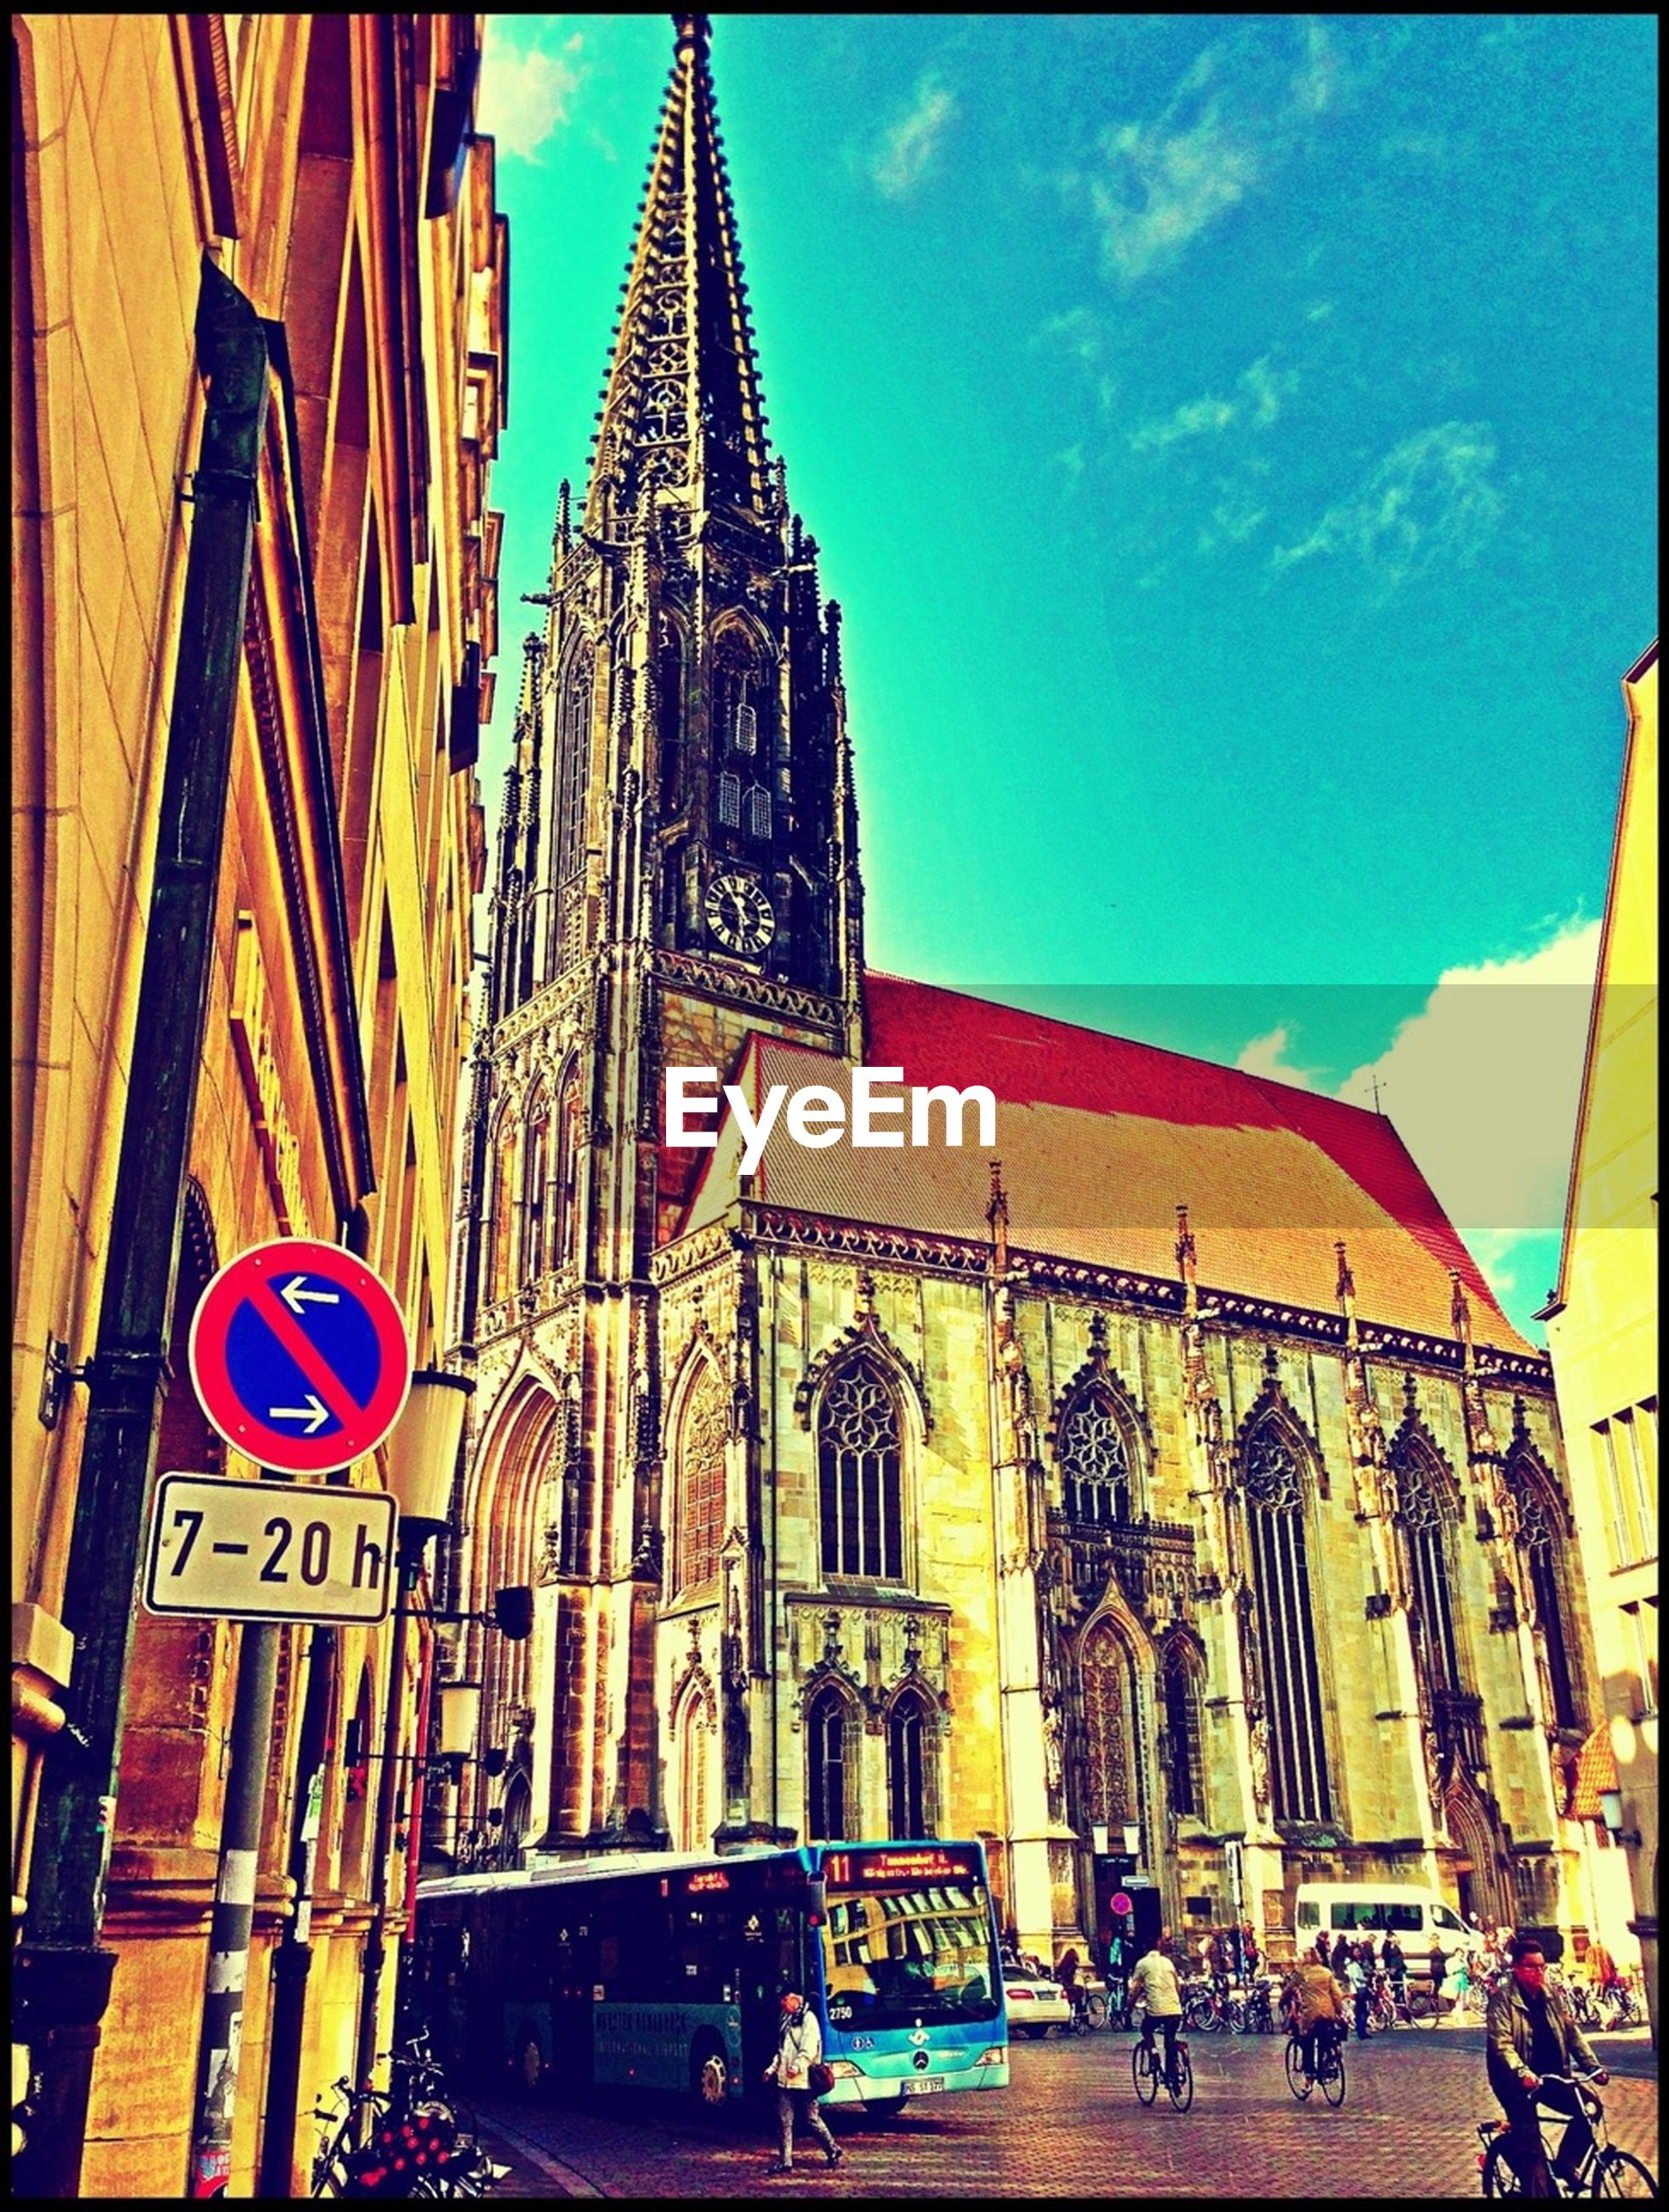 architecture, building exterior, built structure, city, low angle view, street, sky, church, incidental people, car, place of worship, transportation, religion, travel destinations, travel, famous place, land vehicle, city life, facade